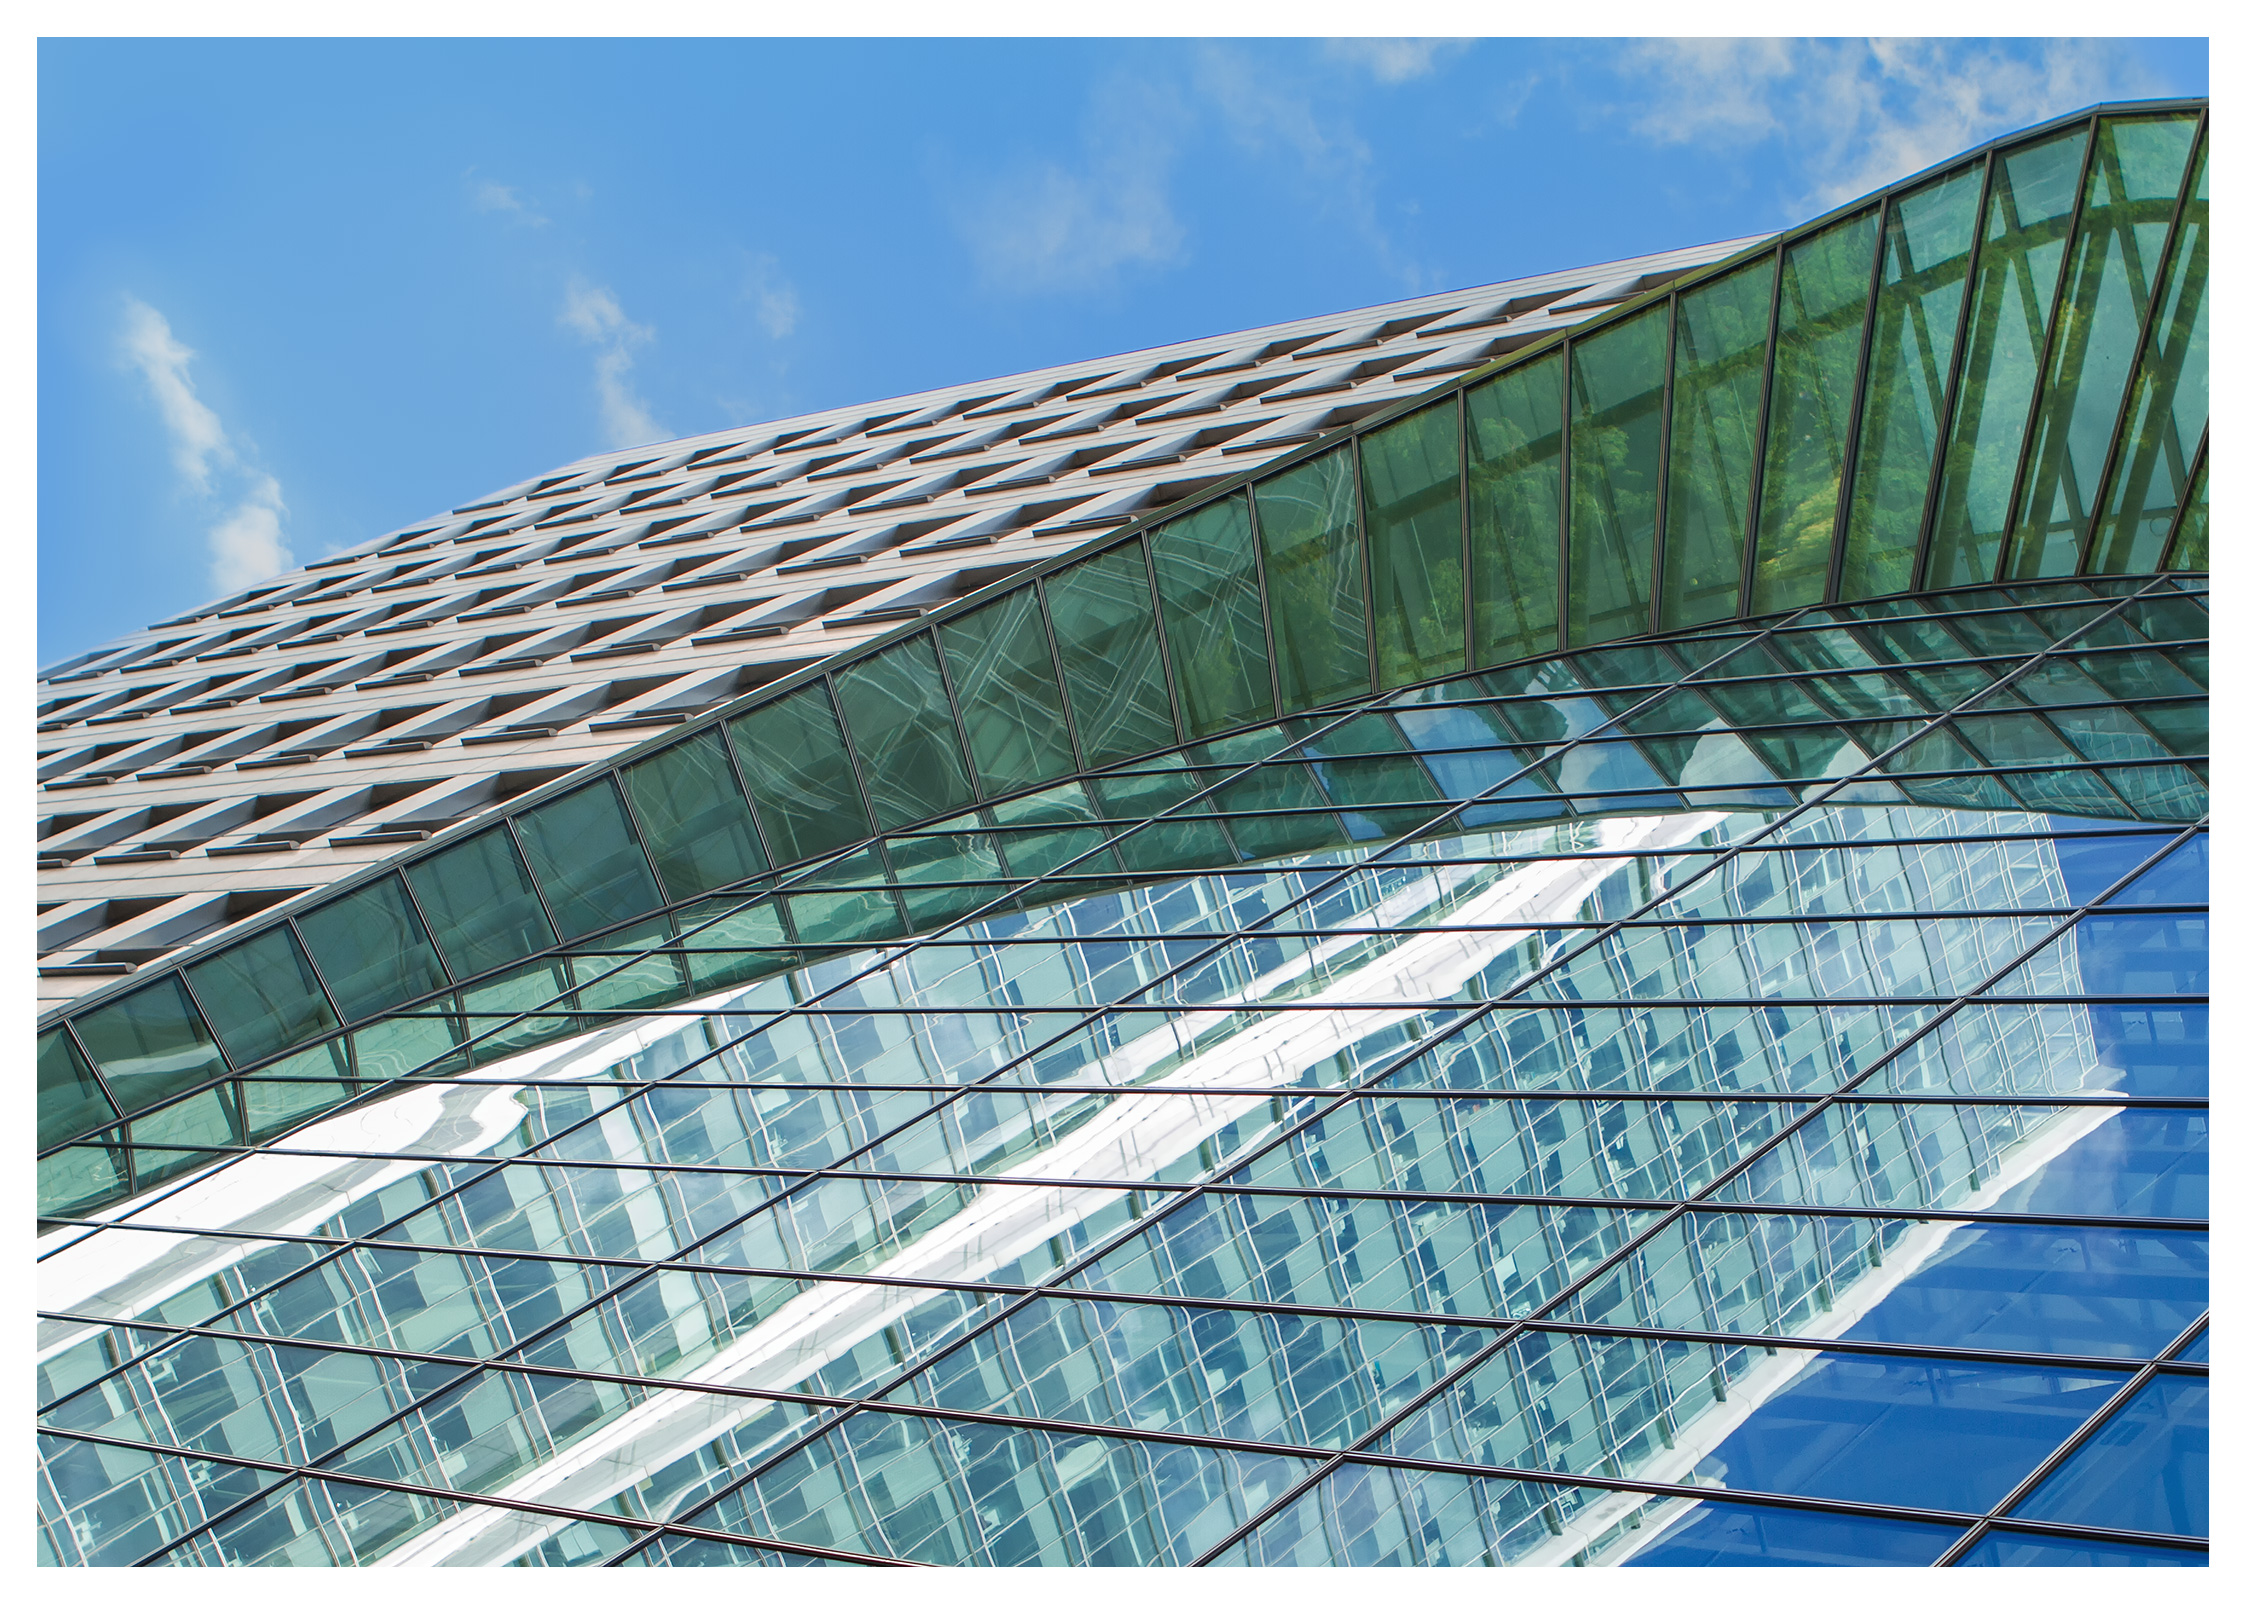 London Architecture, East Wintergarden, Bank Street, Canary Wharf, London.